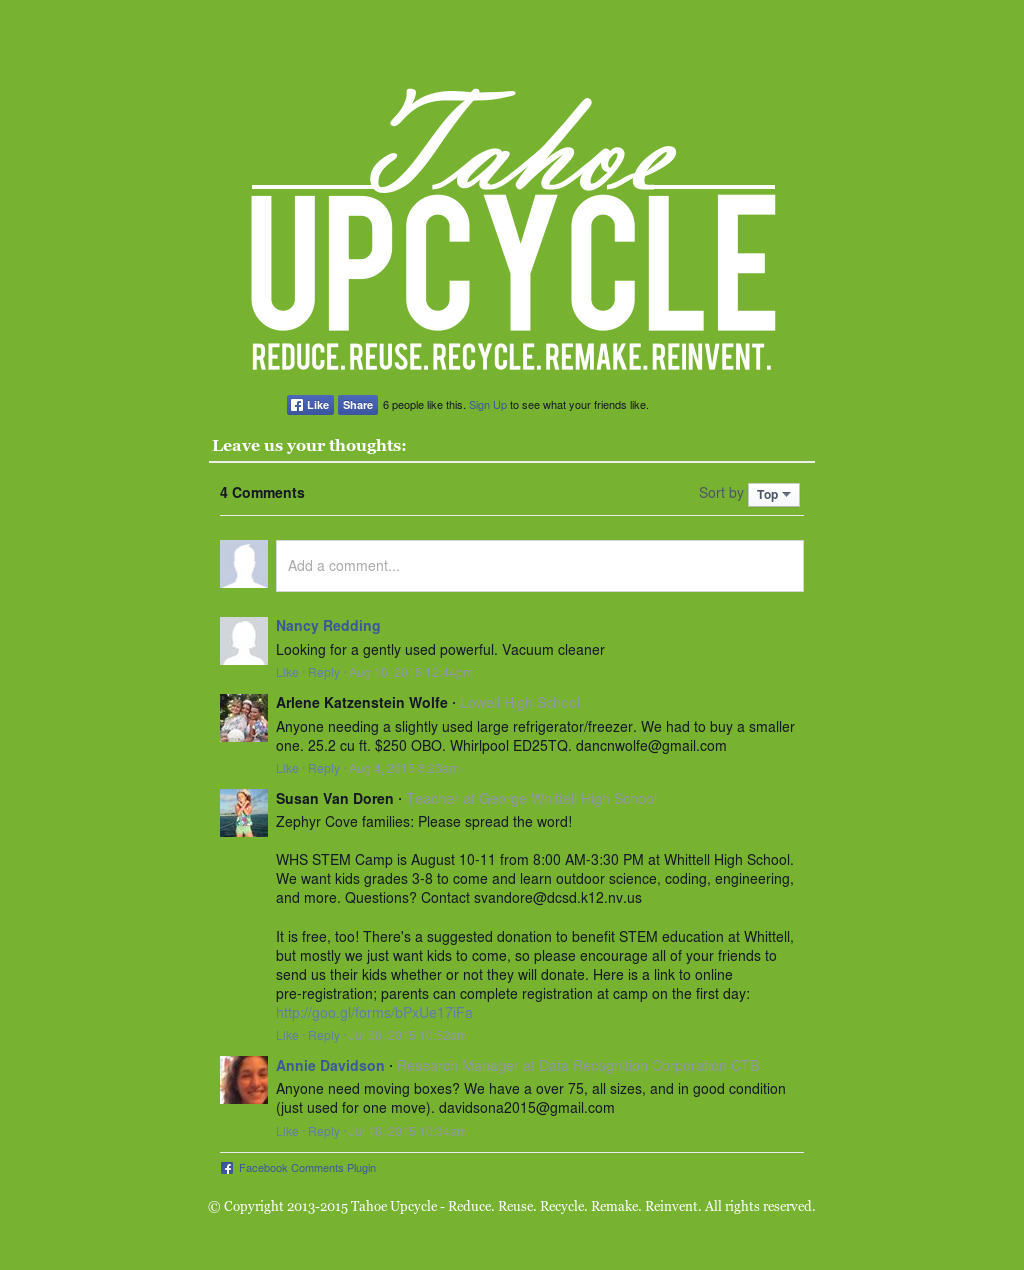 Tahoe Upcycle Competitors, Revenue and Employees - Owler